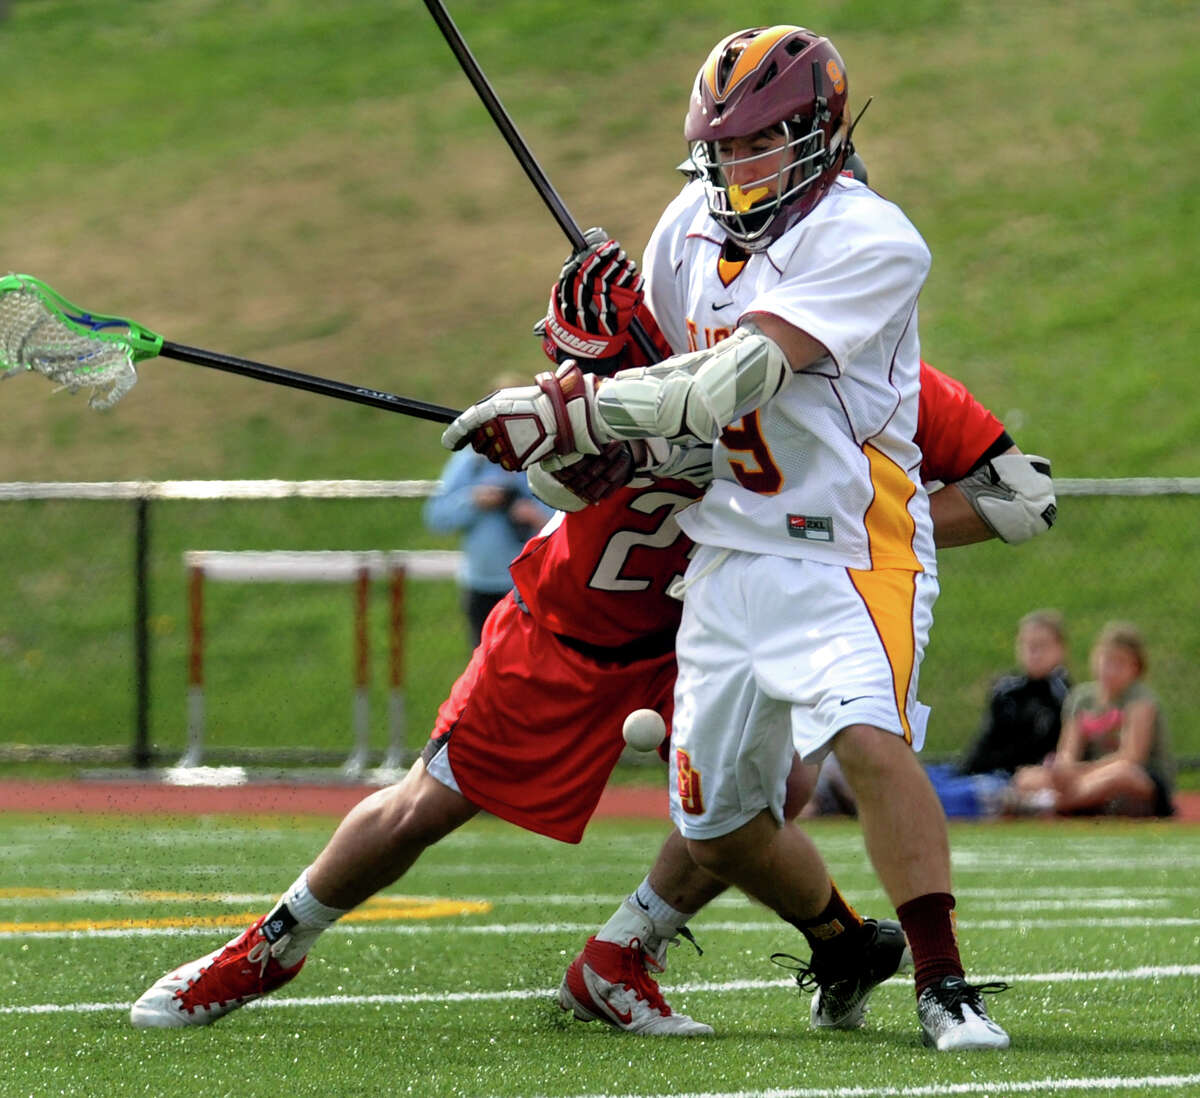 St. Joe's Christian Keator looses the ball as he is shoved from behind by New Canaan's #23 Griffin White, during boys lacrosse action in Trumbull, Conn. on Saturday April 14, 2012.